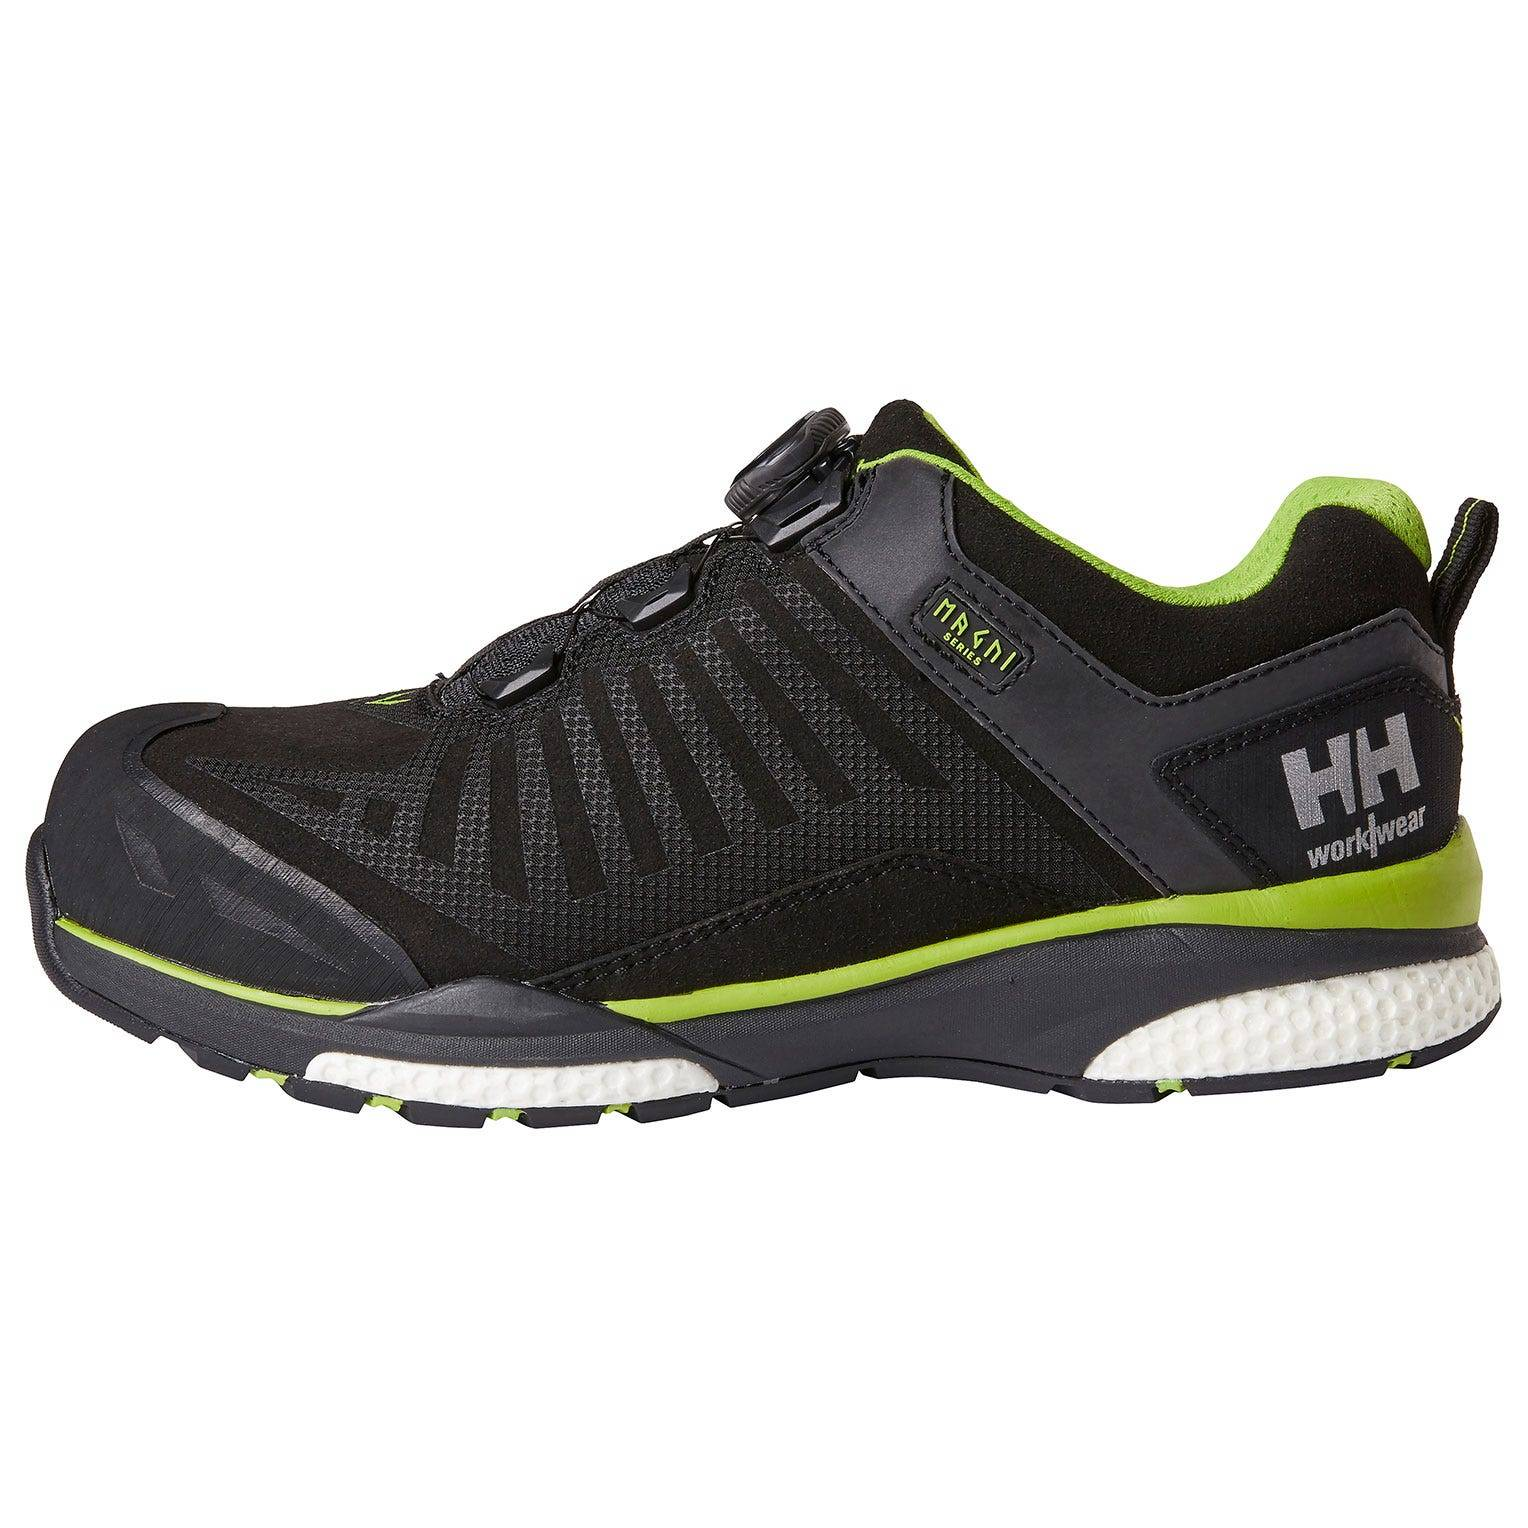 hh workwear workwear helly hansen magni low boa s3 waterproof safety shoes 48 nero